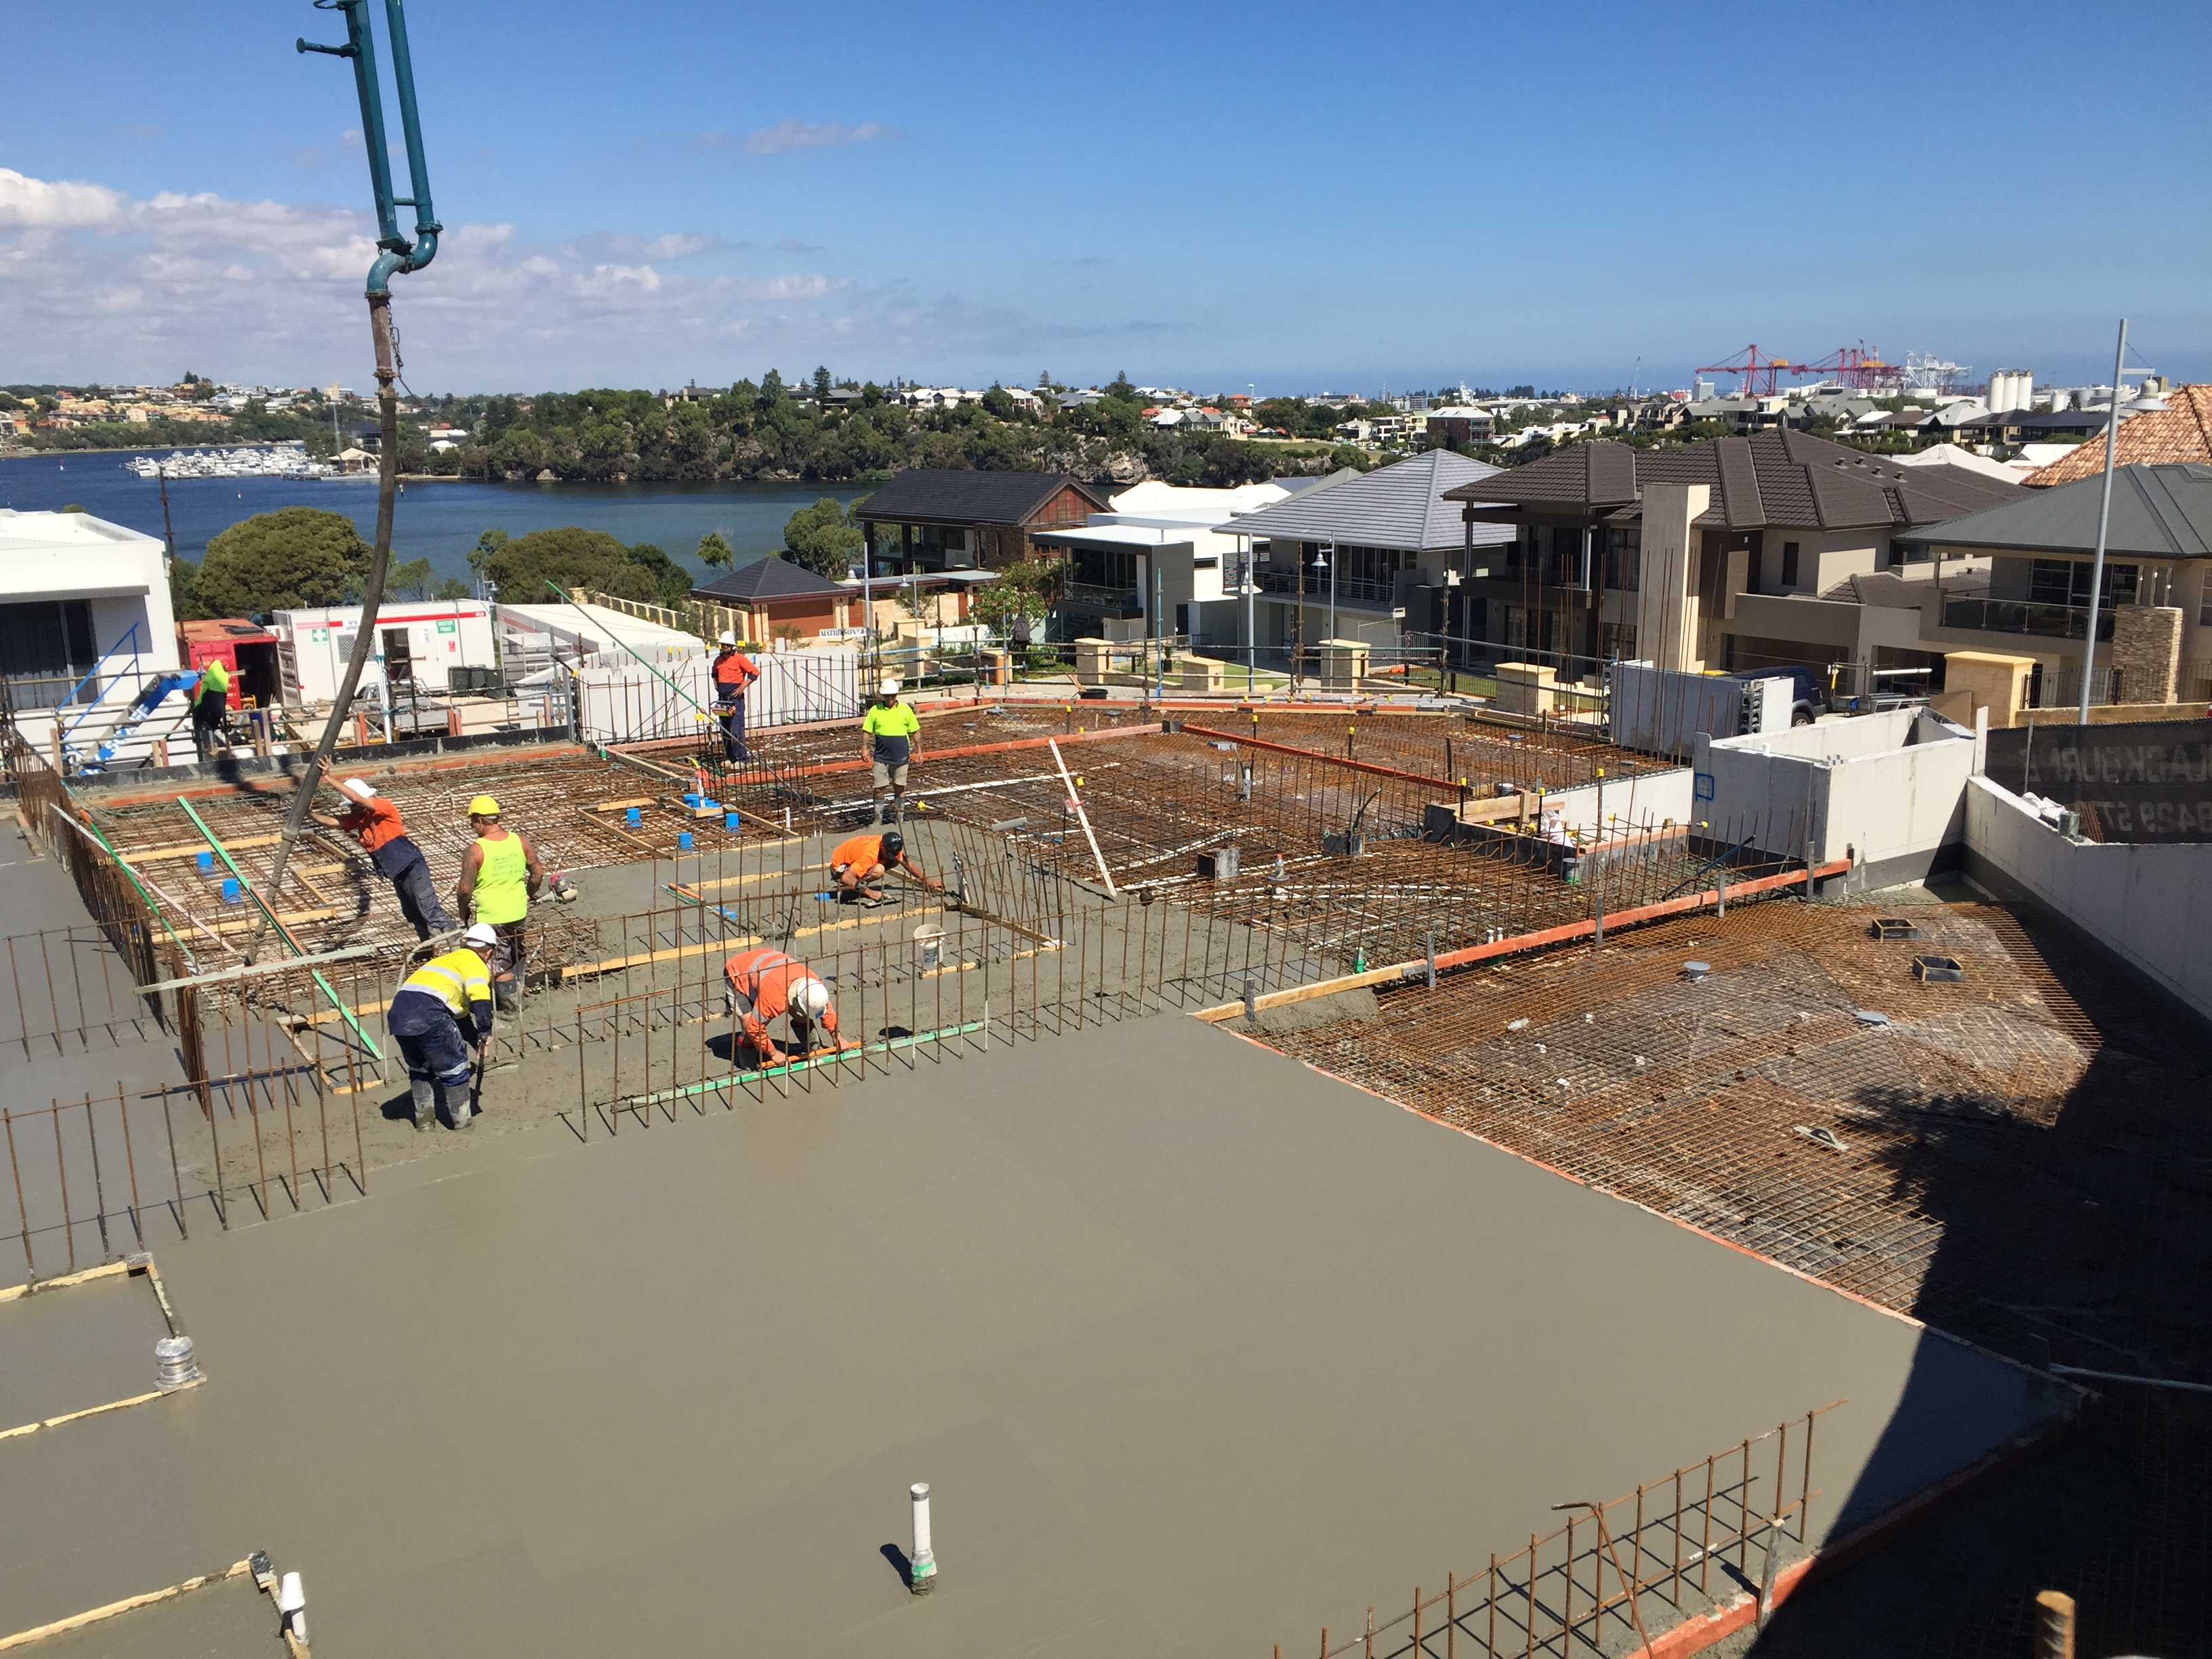 Its Been A Big Day For Our Team At The Cove Apartments Site In North  Fremantle, With The Lower Terrace Ground Floor Slab Pour Now Well Underway.